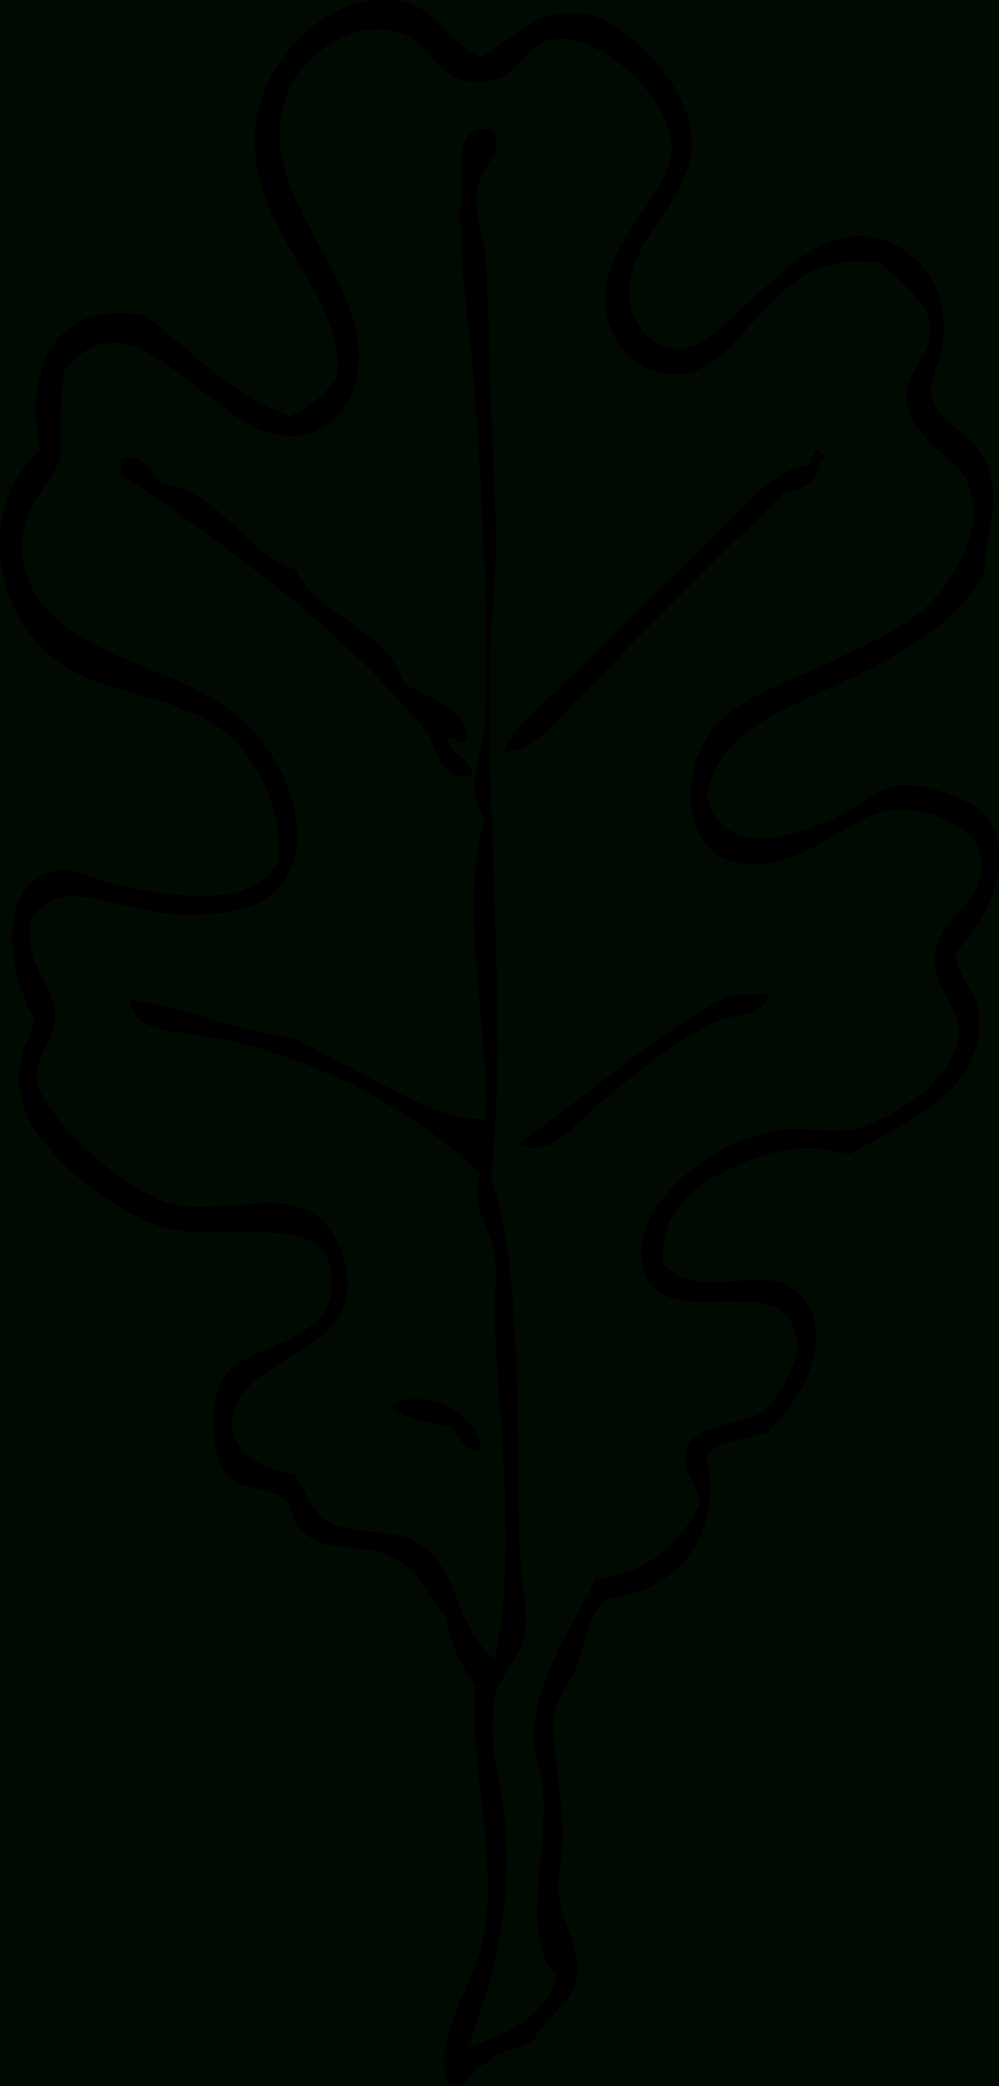 White Oak Leaf Outline Patterns Leaves And Clipart - Clipartpost - Free Printable Oak Leaf Patterns